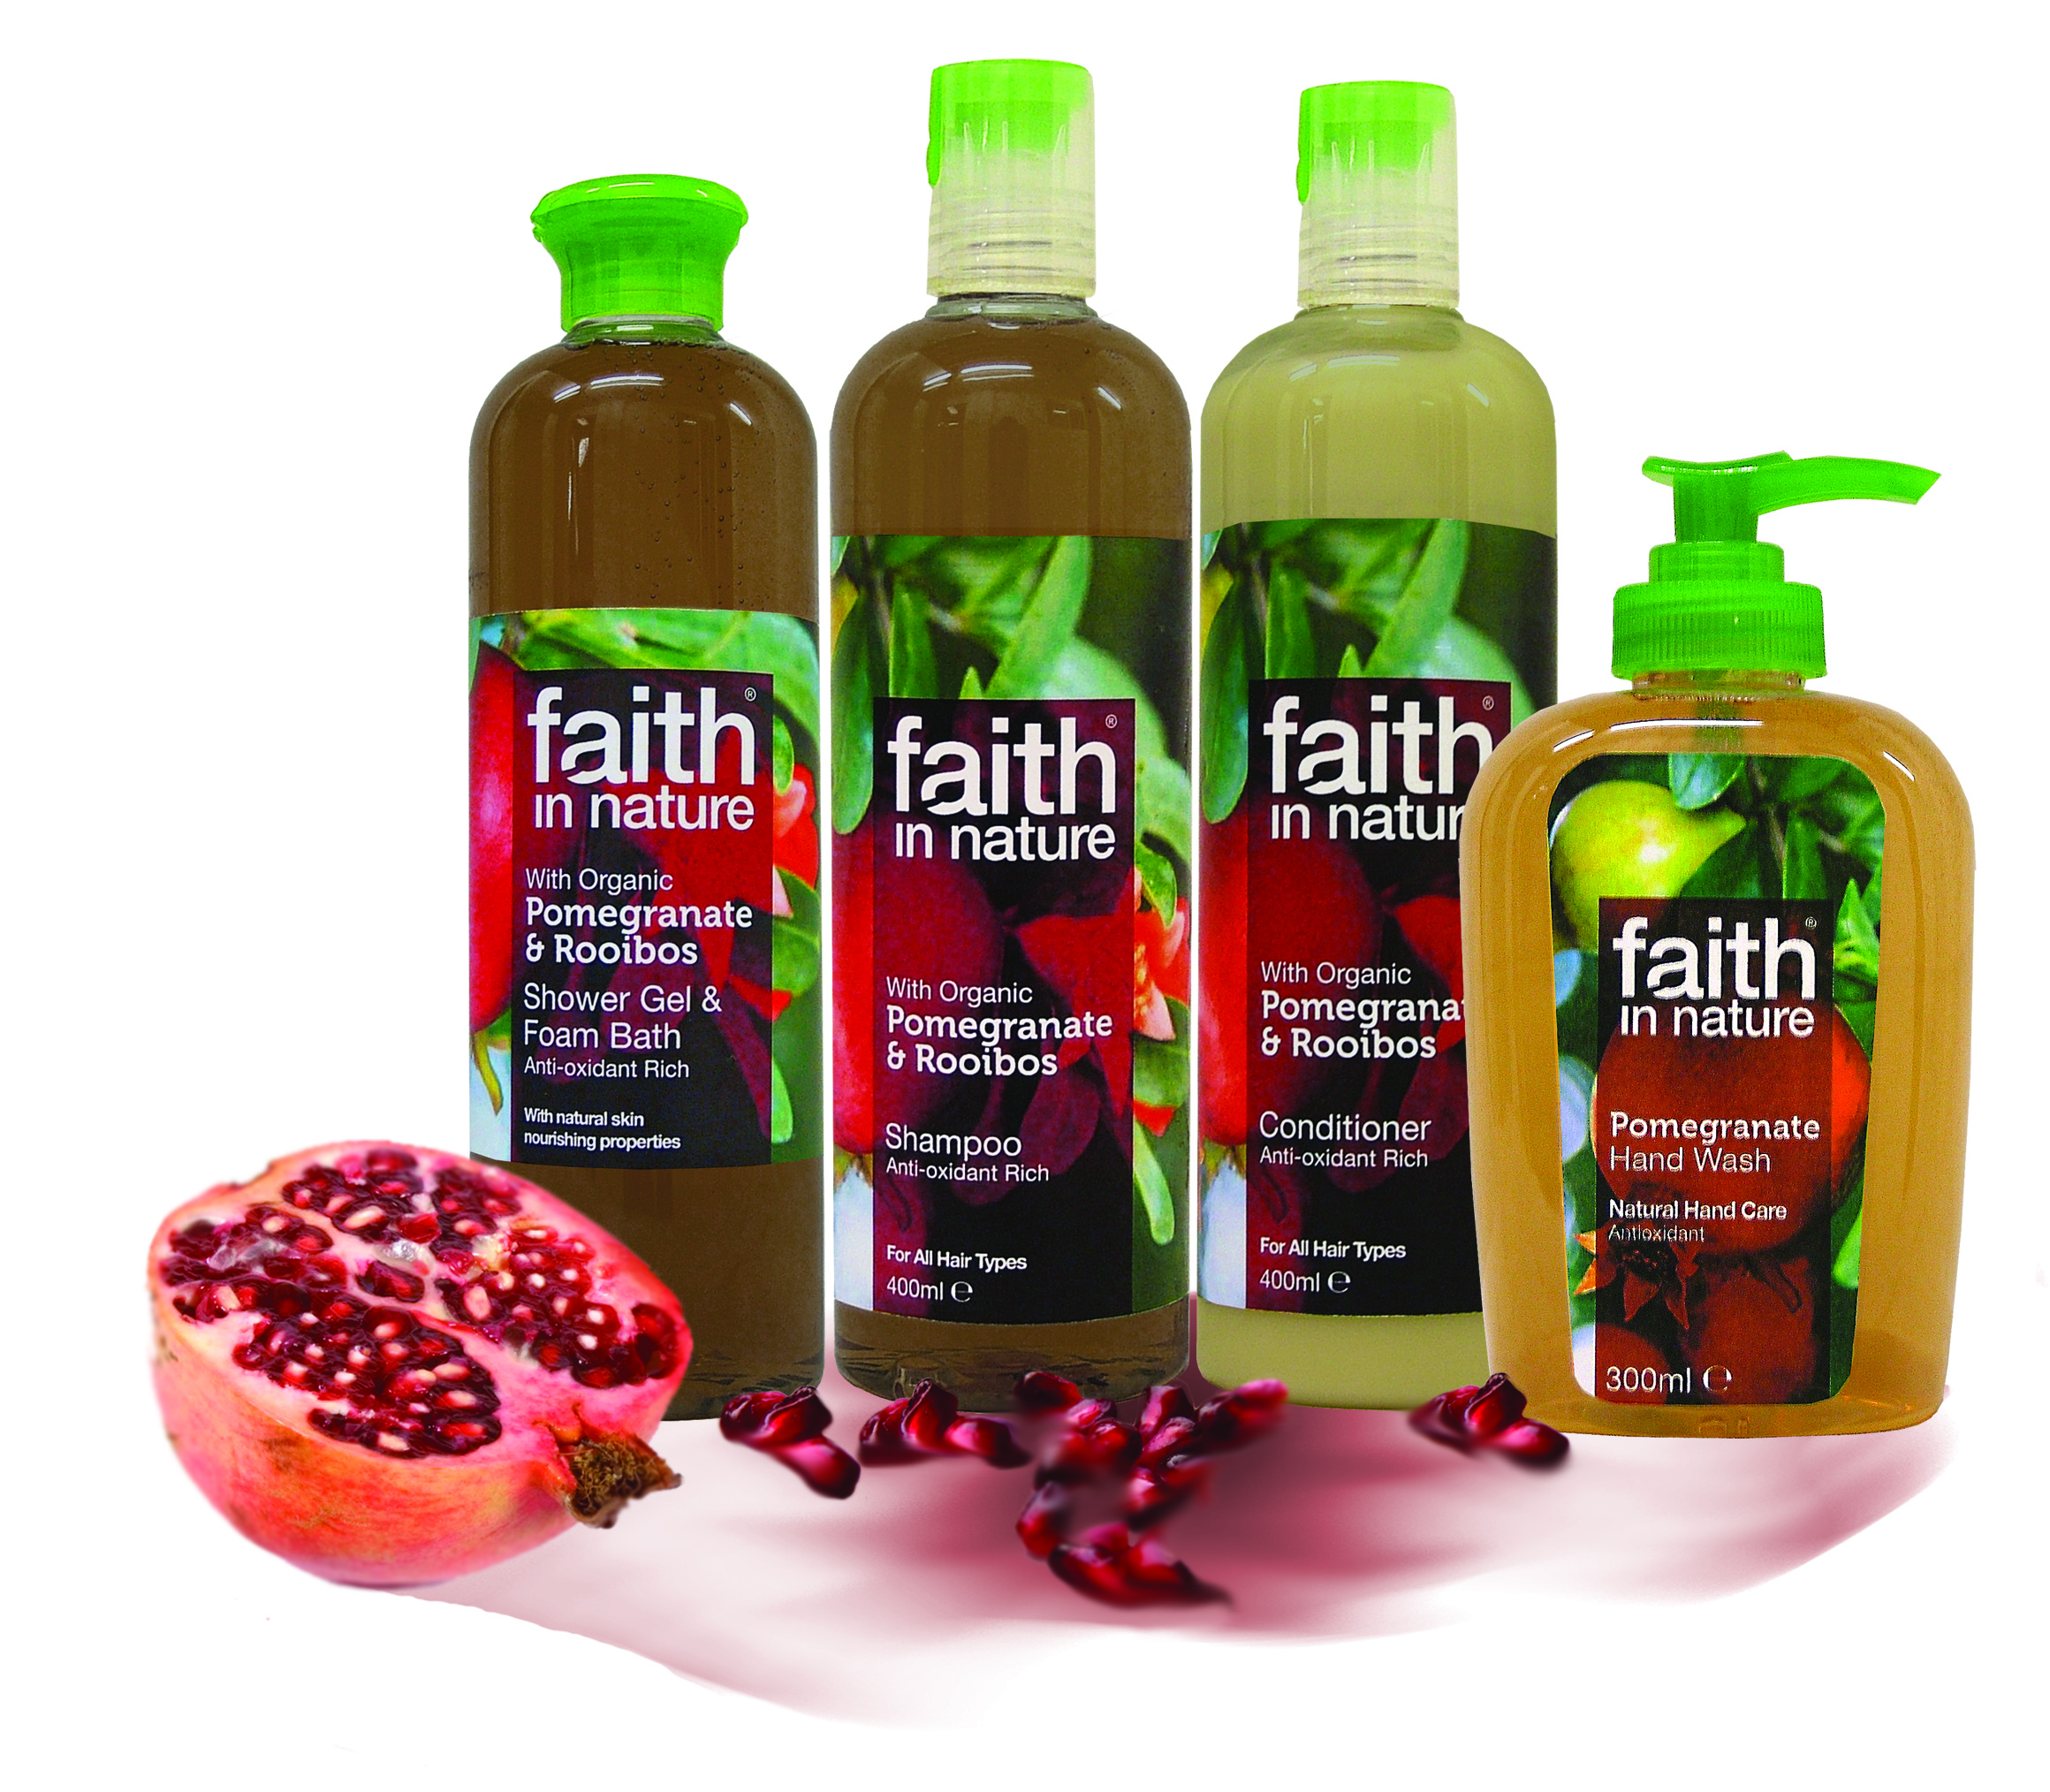 Pomegranate and Rooibos Shampoo and Conditioner £5.35 each, Shower Gel and Bath Foam £5.45.